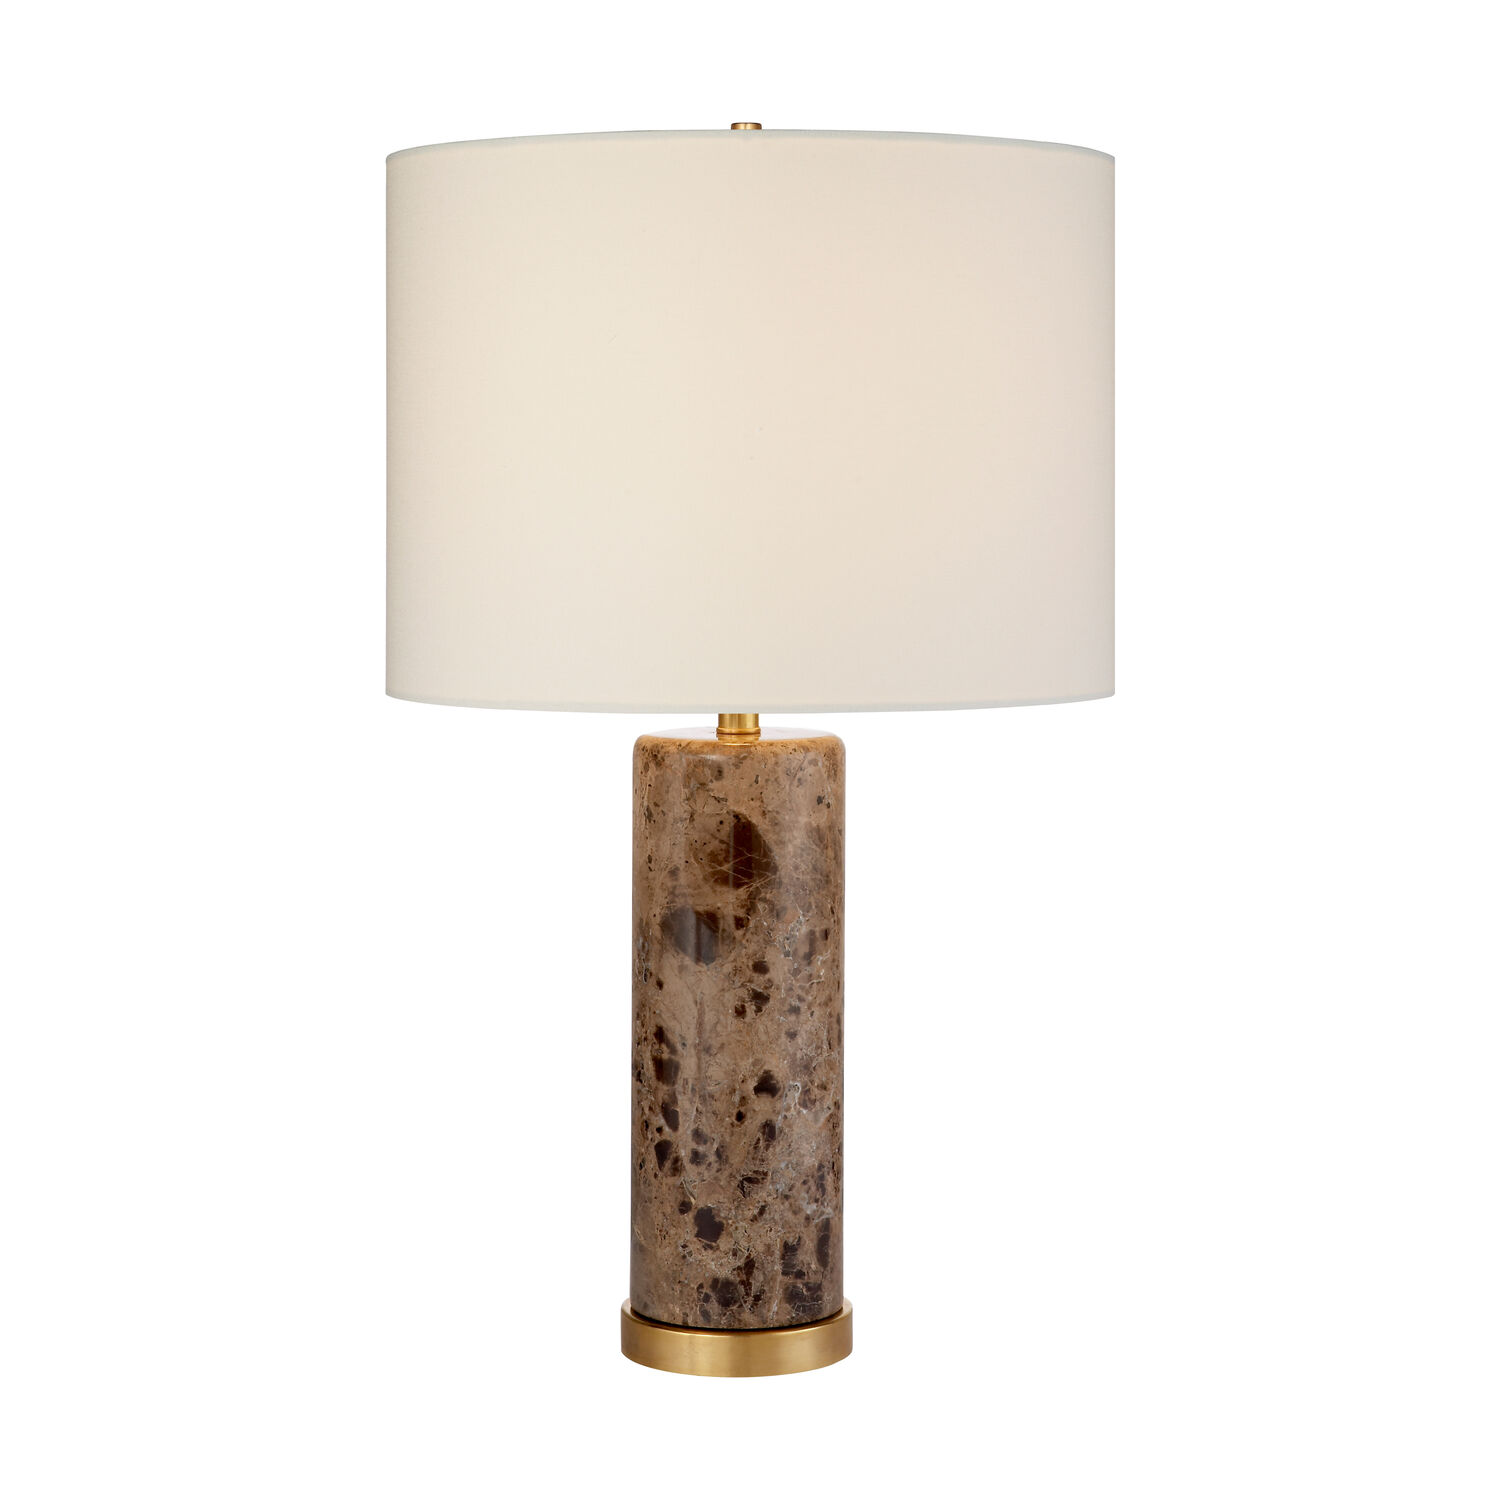 Cliff Table Lamp